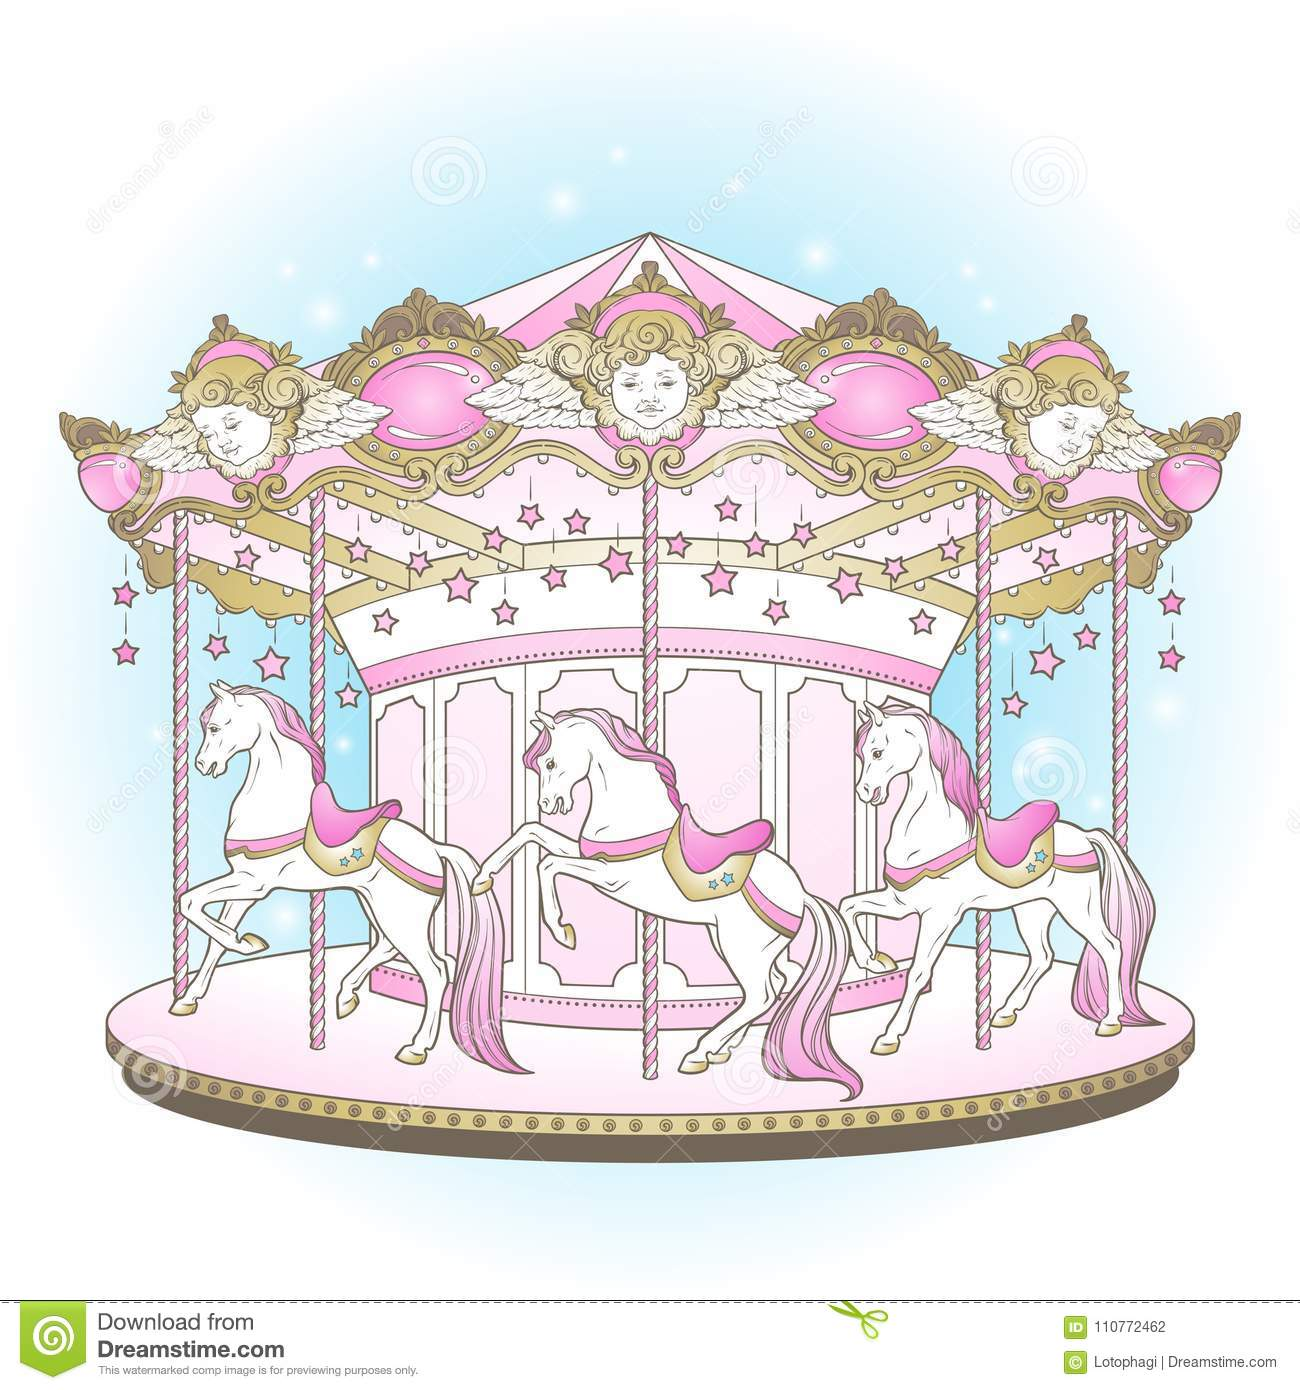 Carousel cute merry go round with horses design for kids in pastel colors hand drawn vector illustration